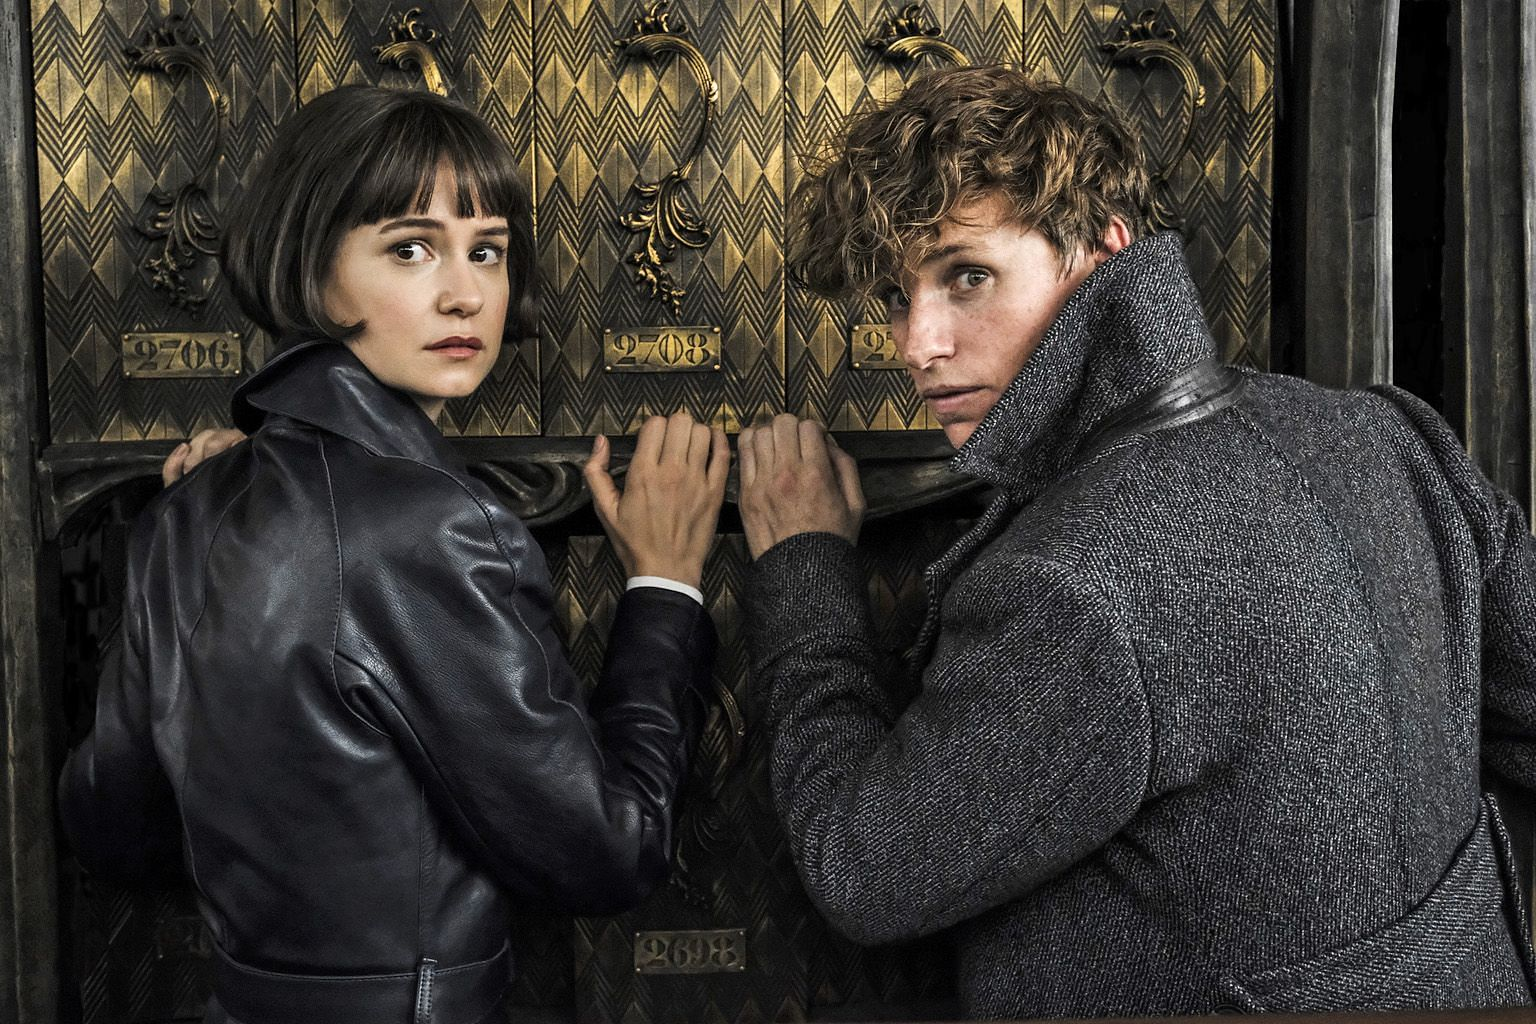 The stars of Fantastic Beasts: The Crimes Of Grindelwald - Katherine Waterston (left) and Eddie Redmayne